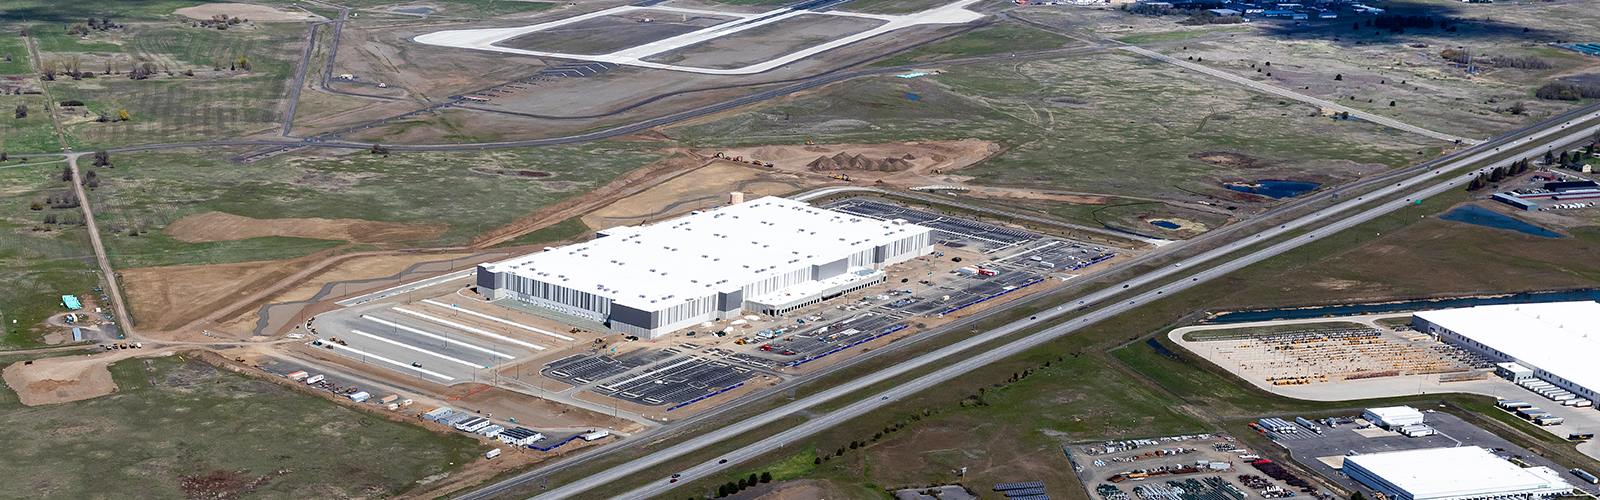 Amazon Fulfillment Center To Be Built Near Spokane International Airport